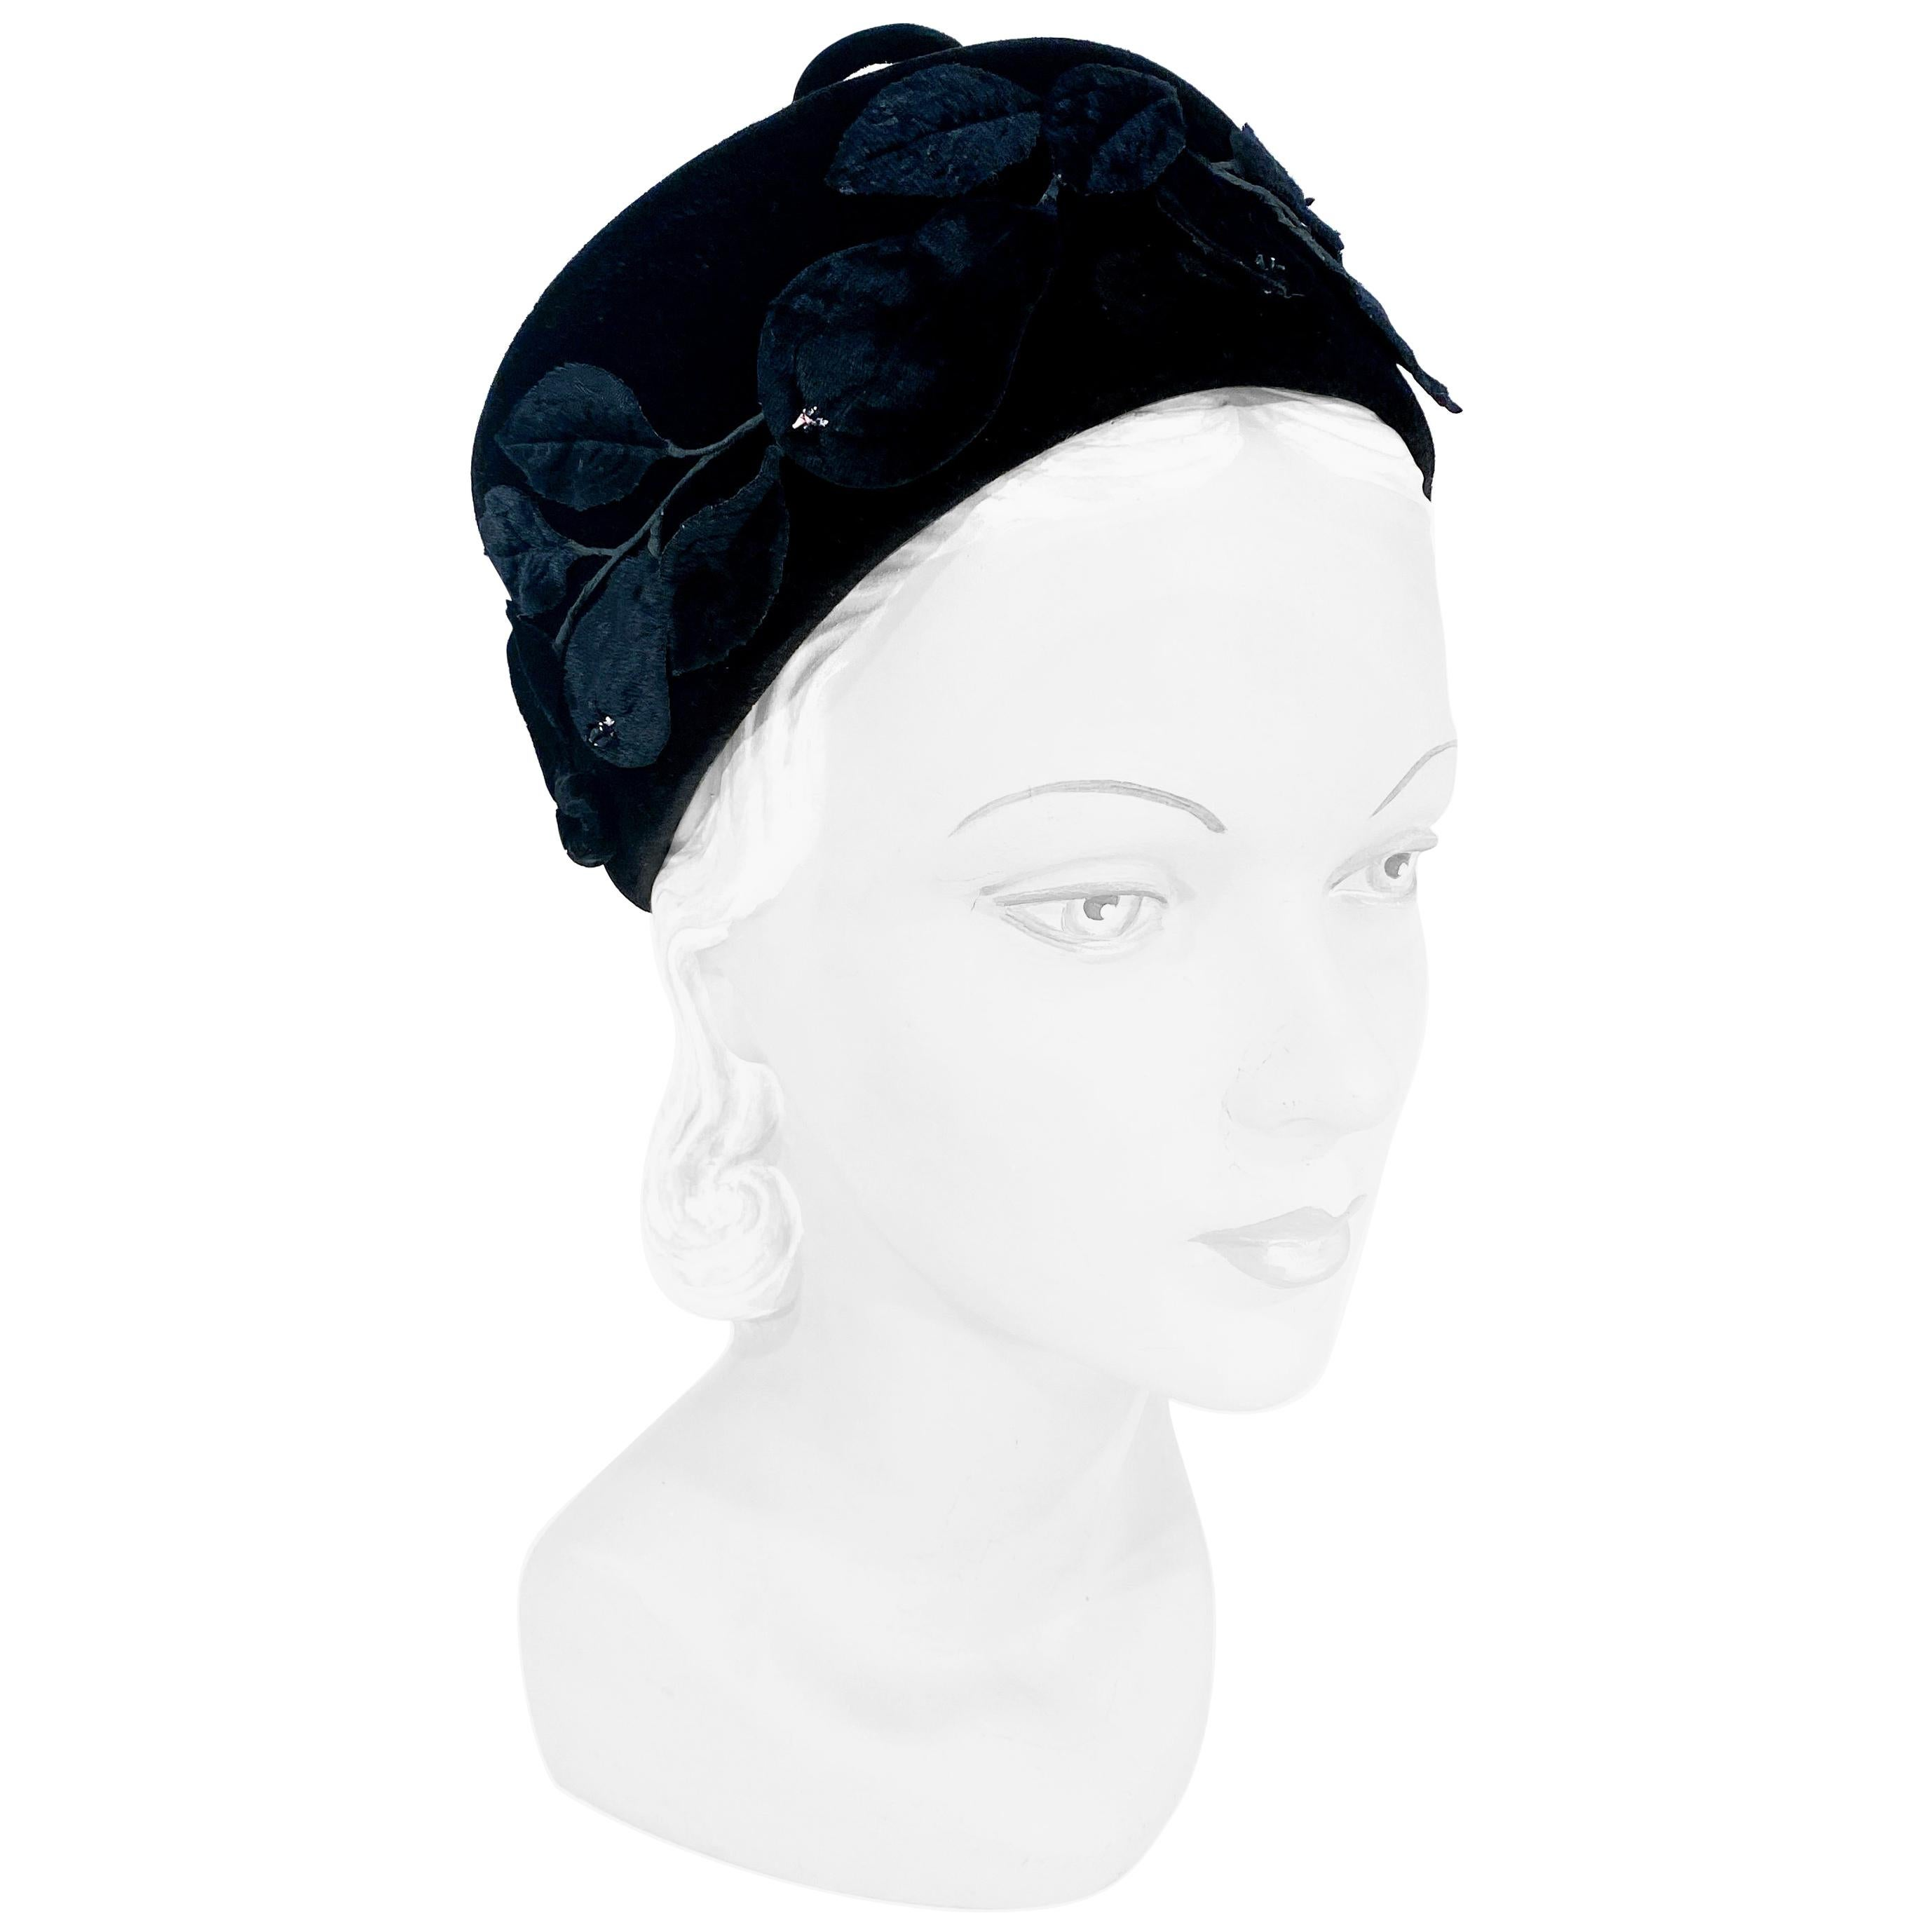 1960s Black Velvet Pillbox Hat with Fruit Accents